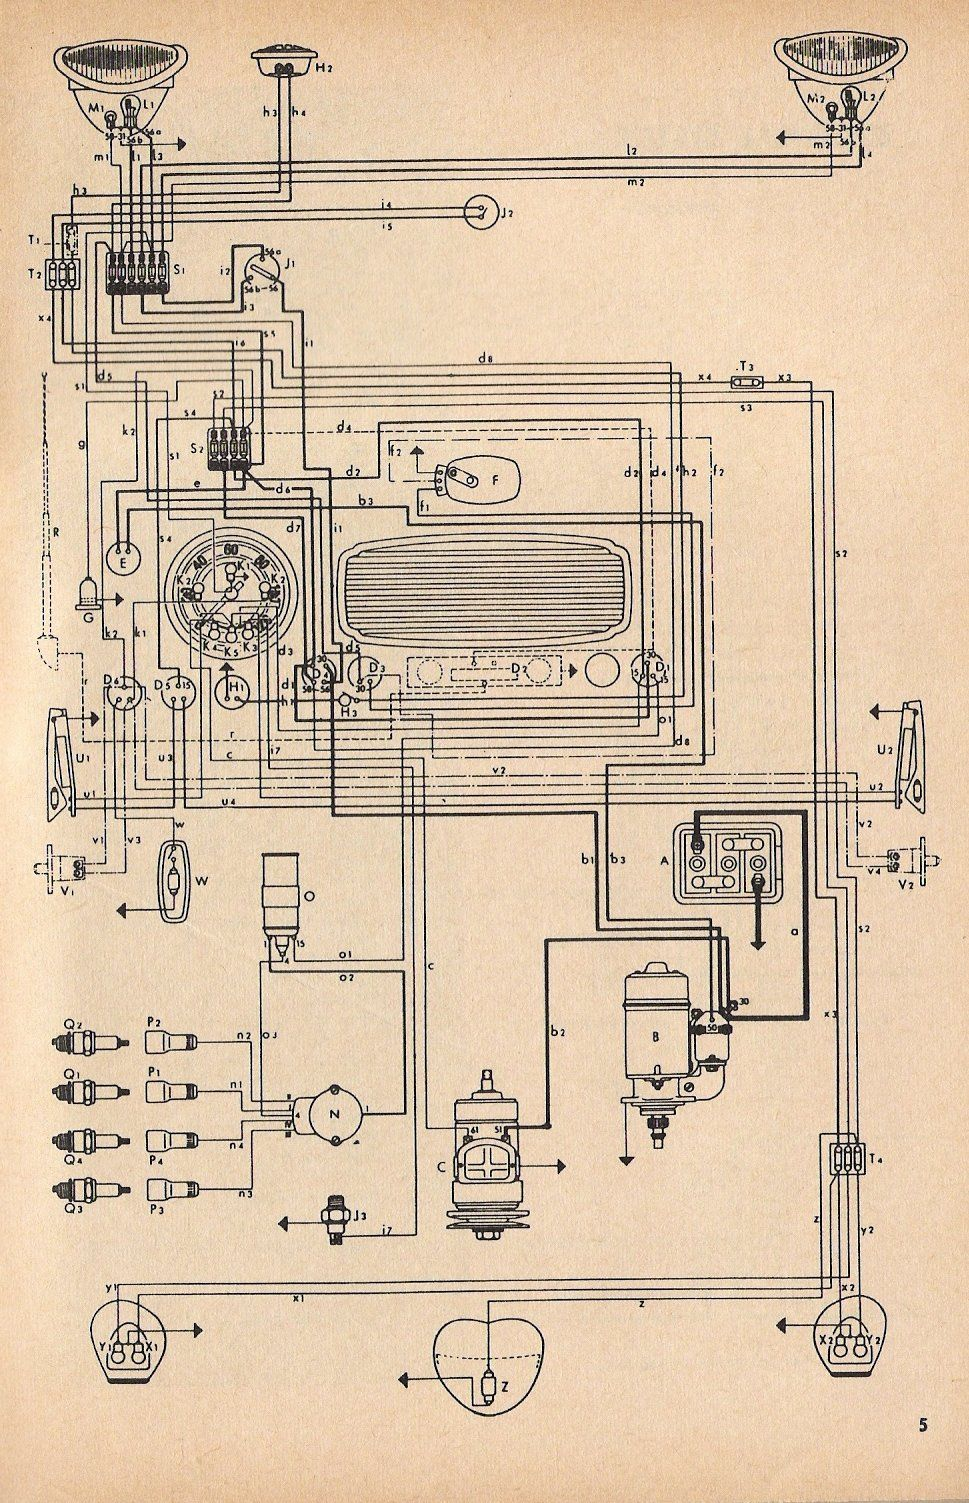 73aa9ad606b8bf00f62fd44f769ec35c 1949 vw wiring diagram on 1949 download wirning diagrams 2008 vw jetta headlight wiring diagram at highcare.asia